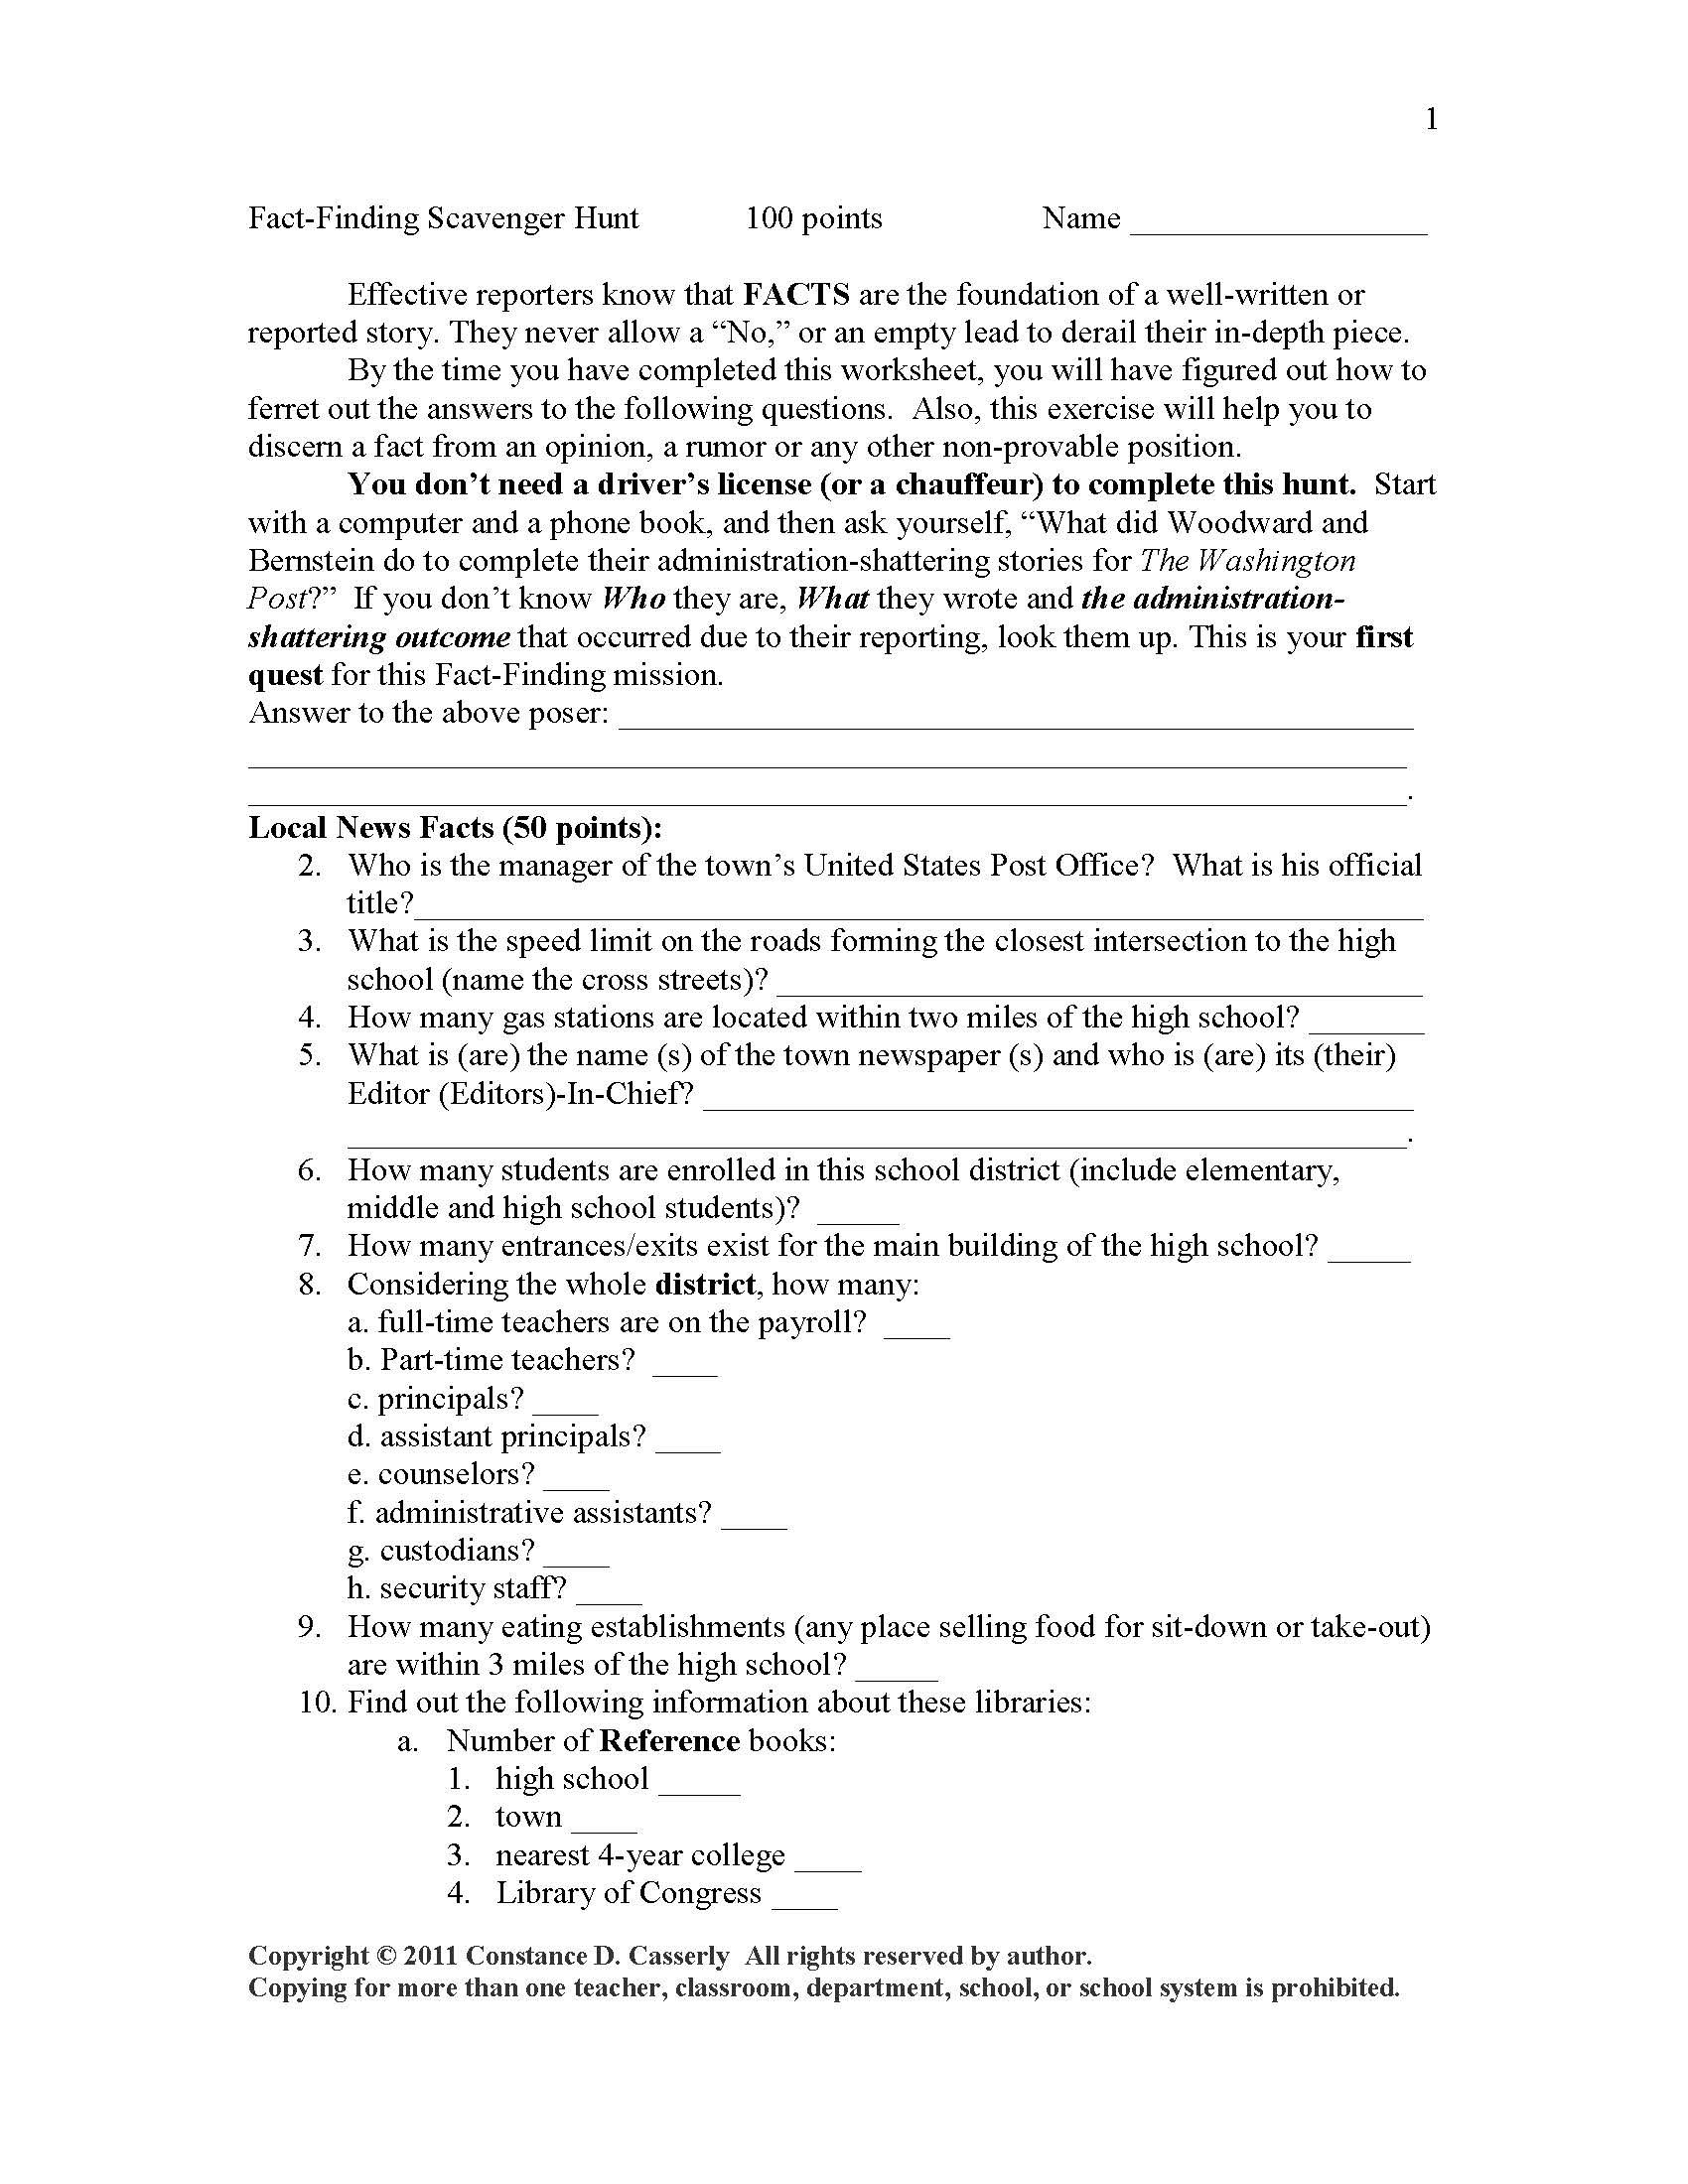 Teach Students How To Hunt Down Material For Articles With This Fact Finding Scavenger Hunt